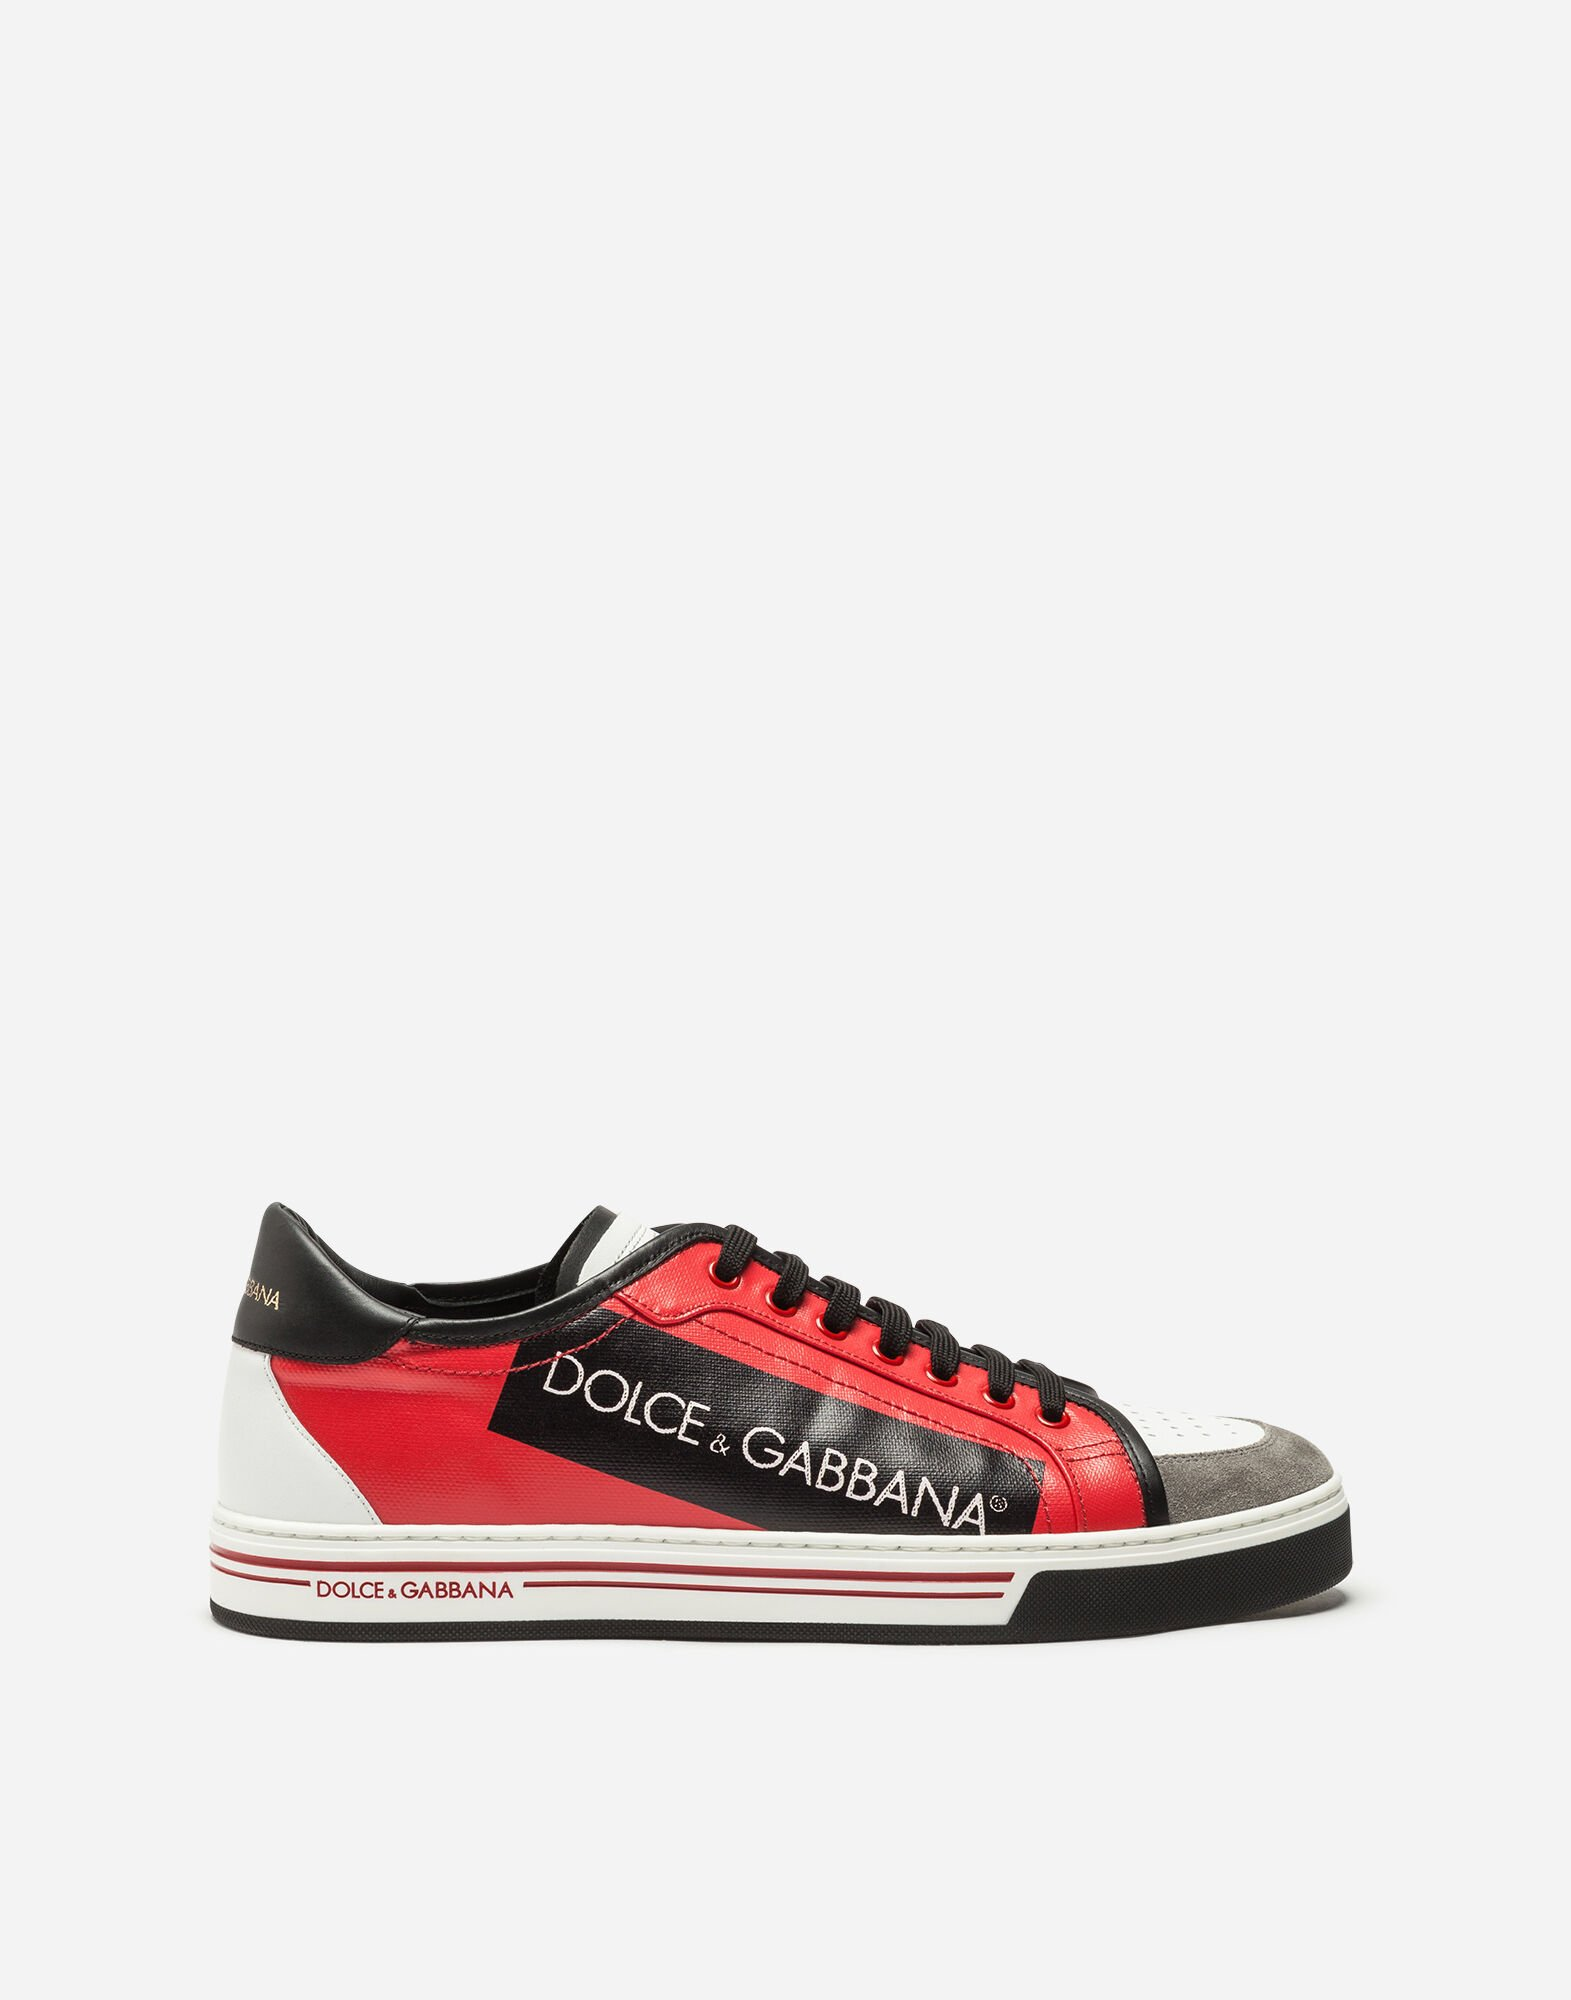 Logo-painted Leather Sneakers - Bright pink Dolce & Gabbana